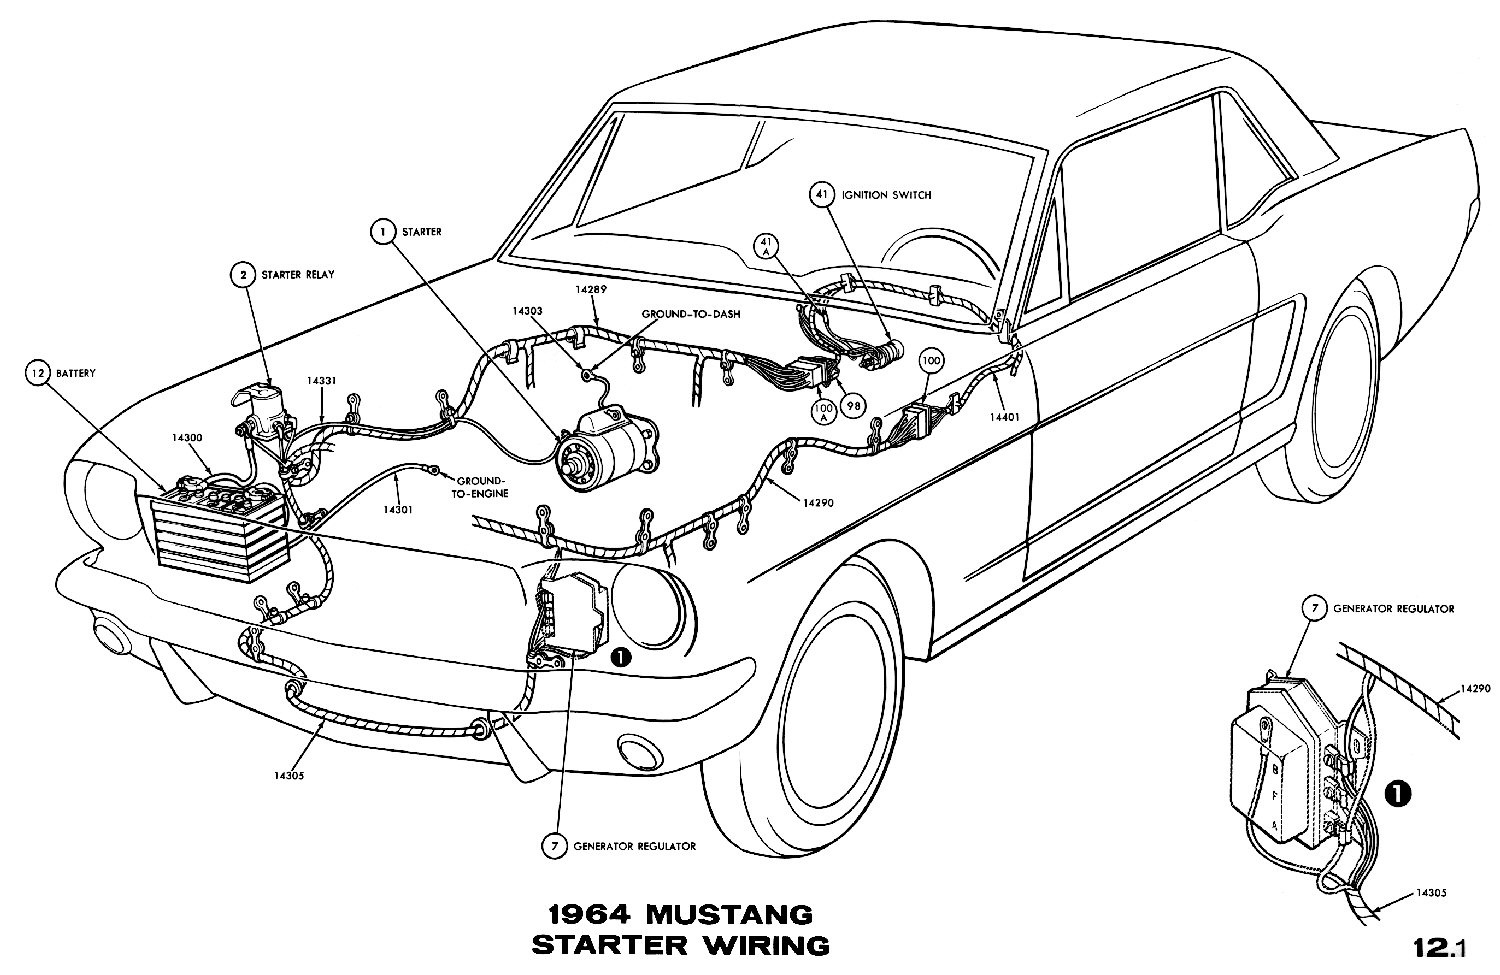 1964d 1964 mustang wiring diagrams average joe restoration 67 mustang wiring diagram at alyssarenee.co